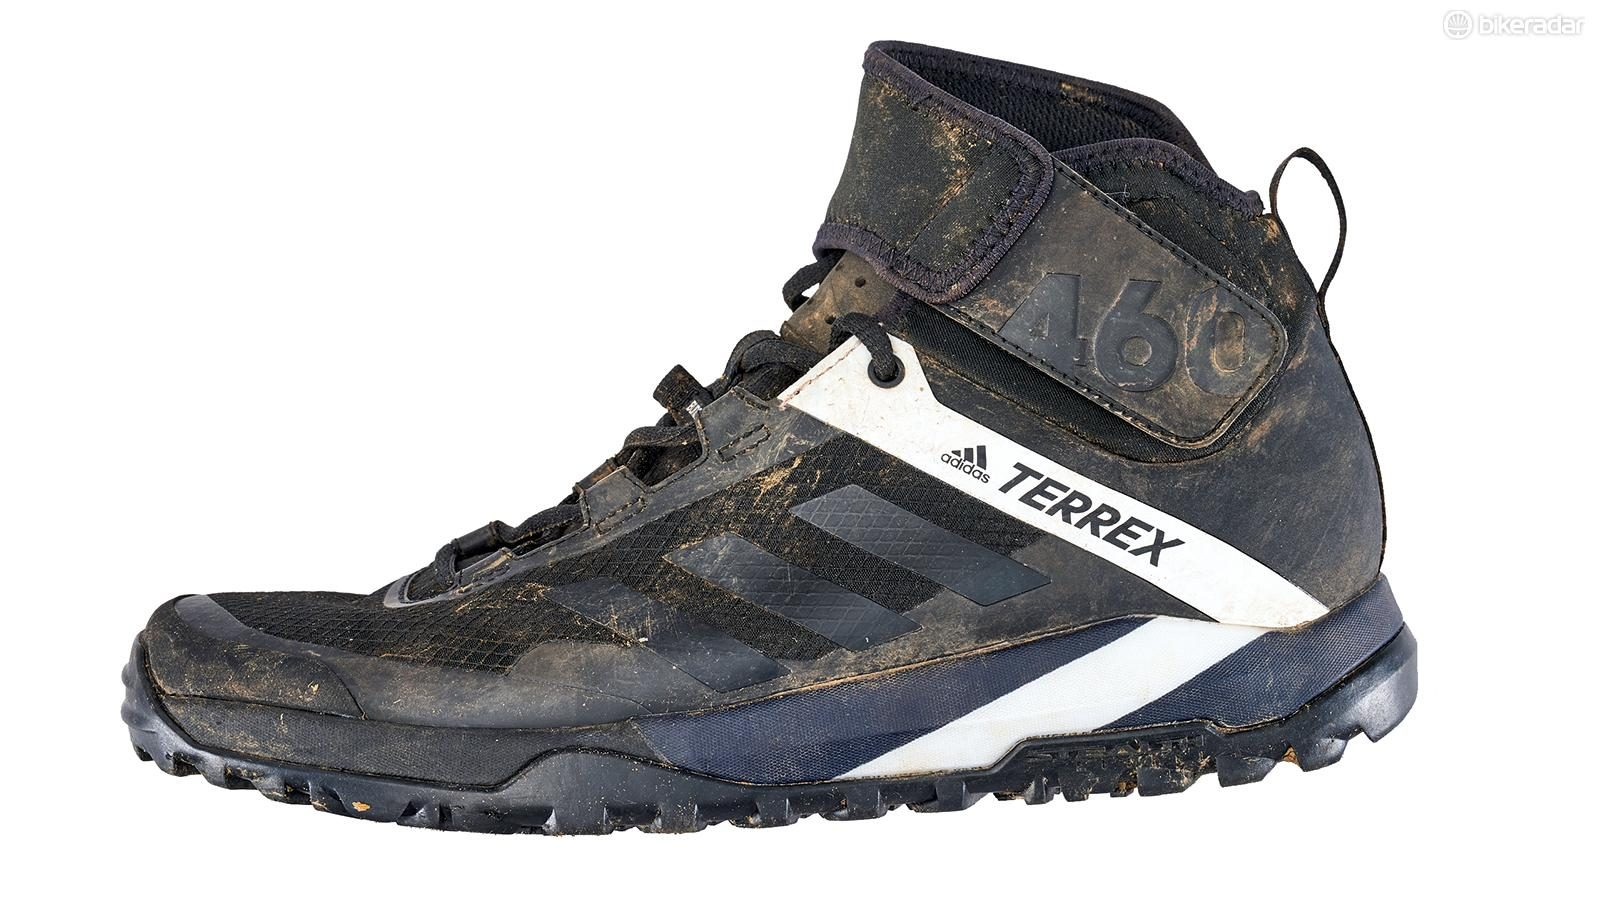 Adidas Terrex Trail Cross Protect MTB shoe review - BikeRadar